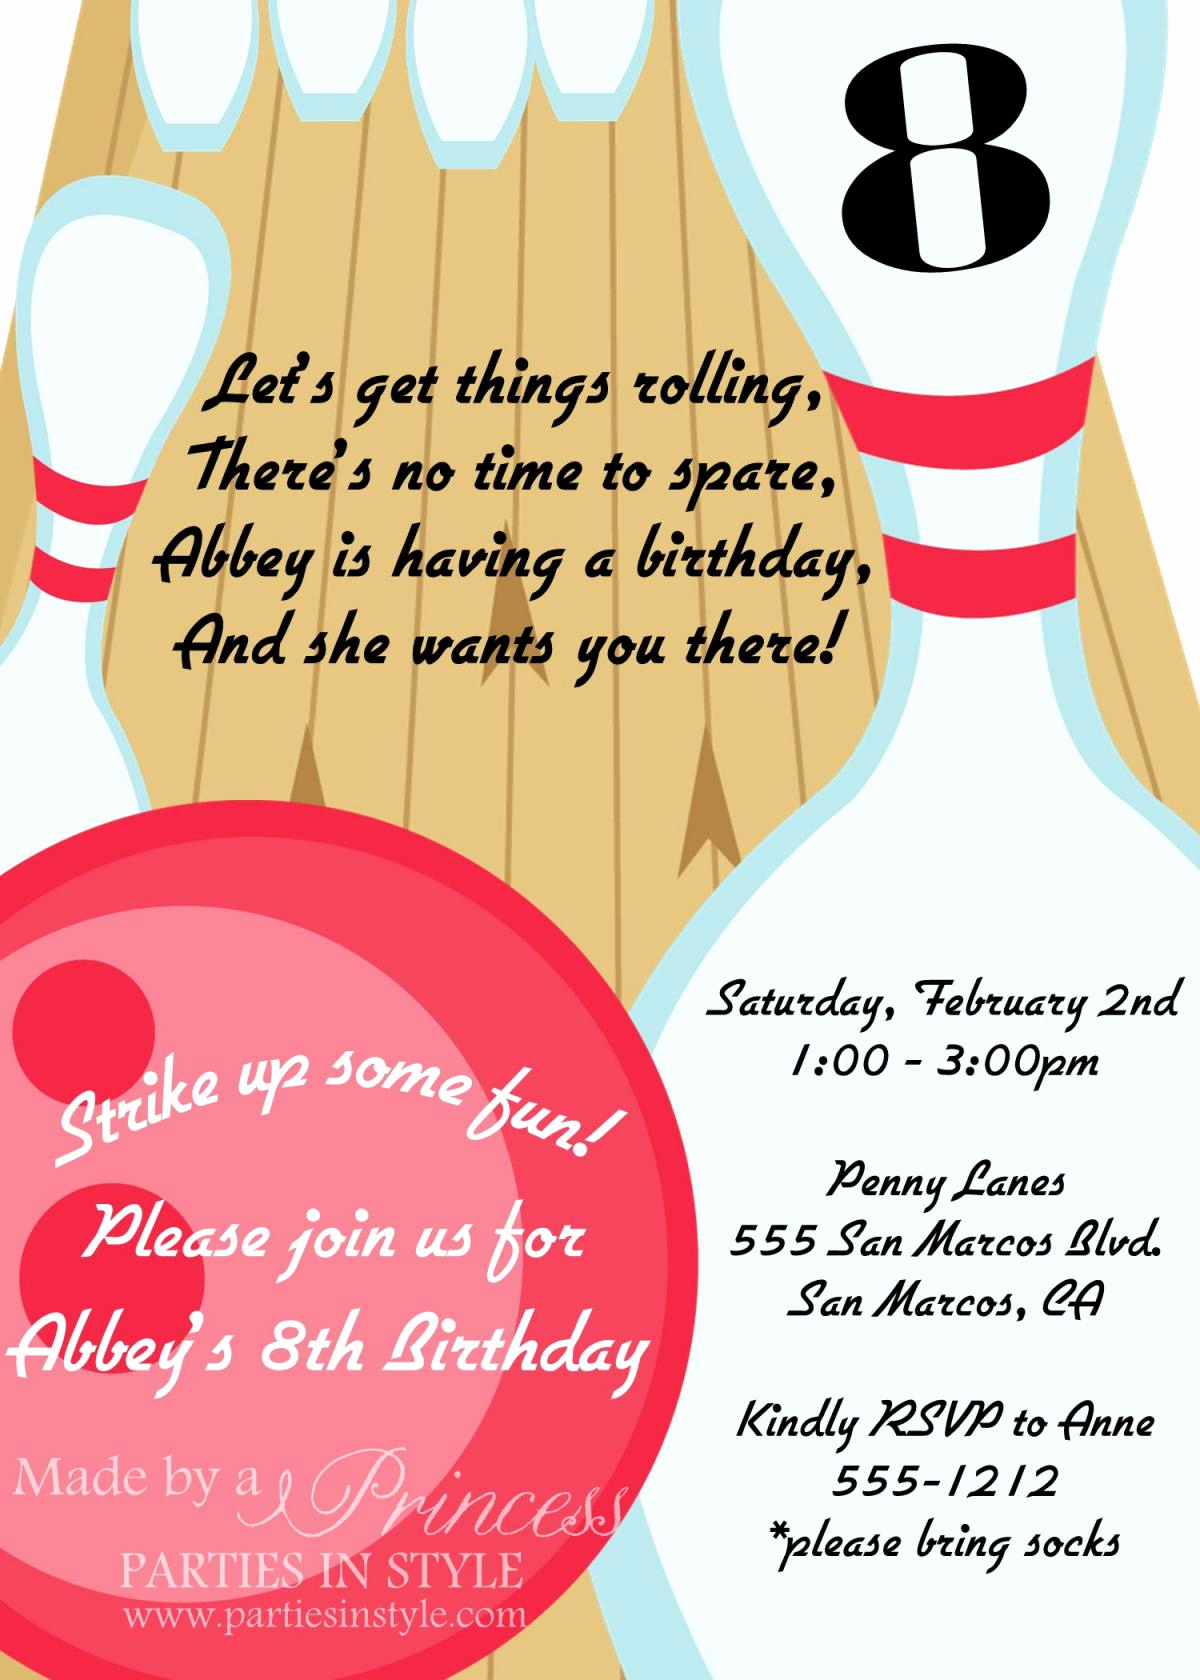 Bowling Birthday Party Invitation Awesome Bowling Birthday Party Printable Invitation Diy Pink